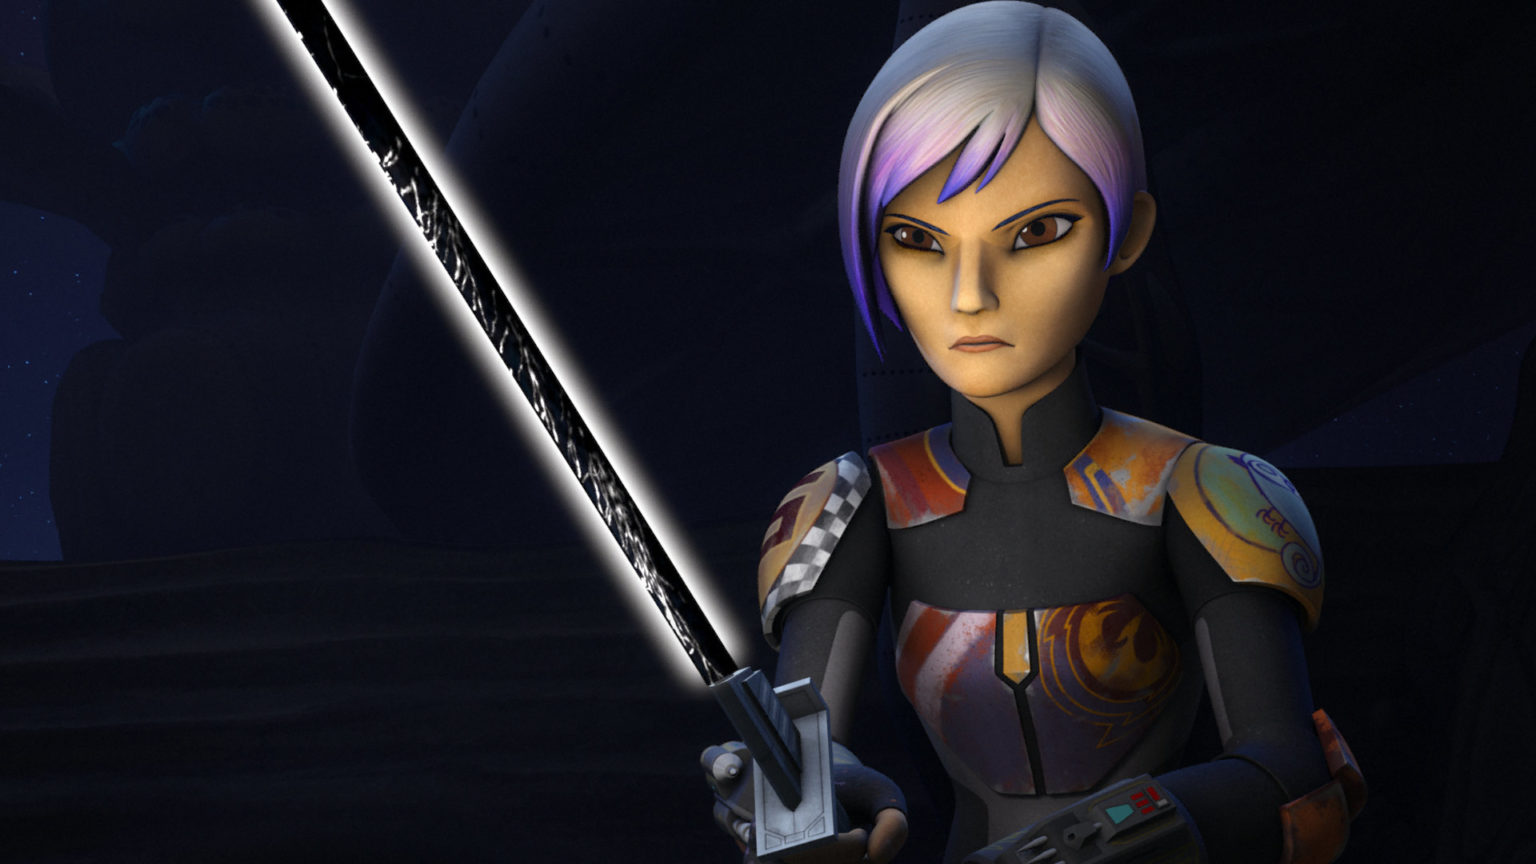 Sabine Wren is holding the darksaber.